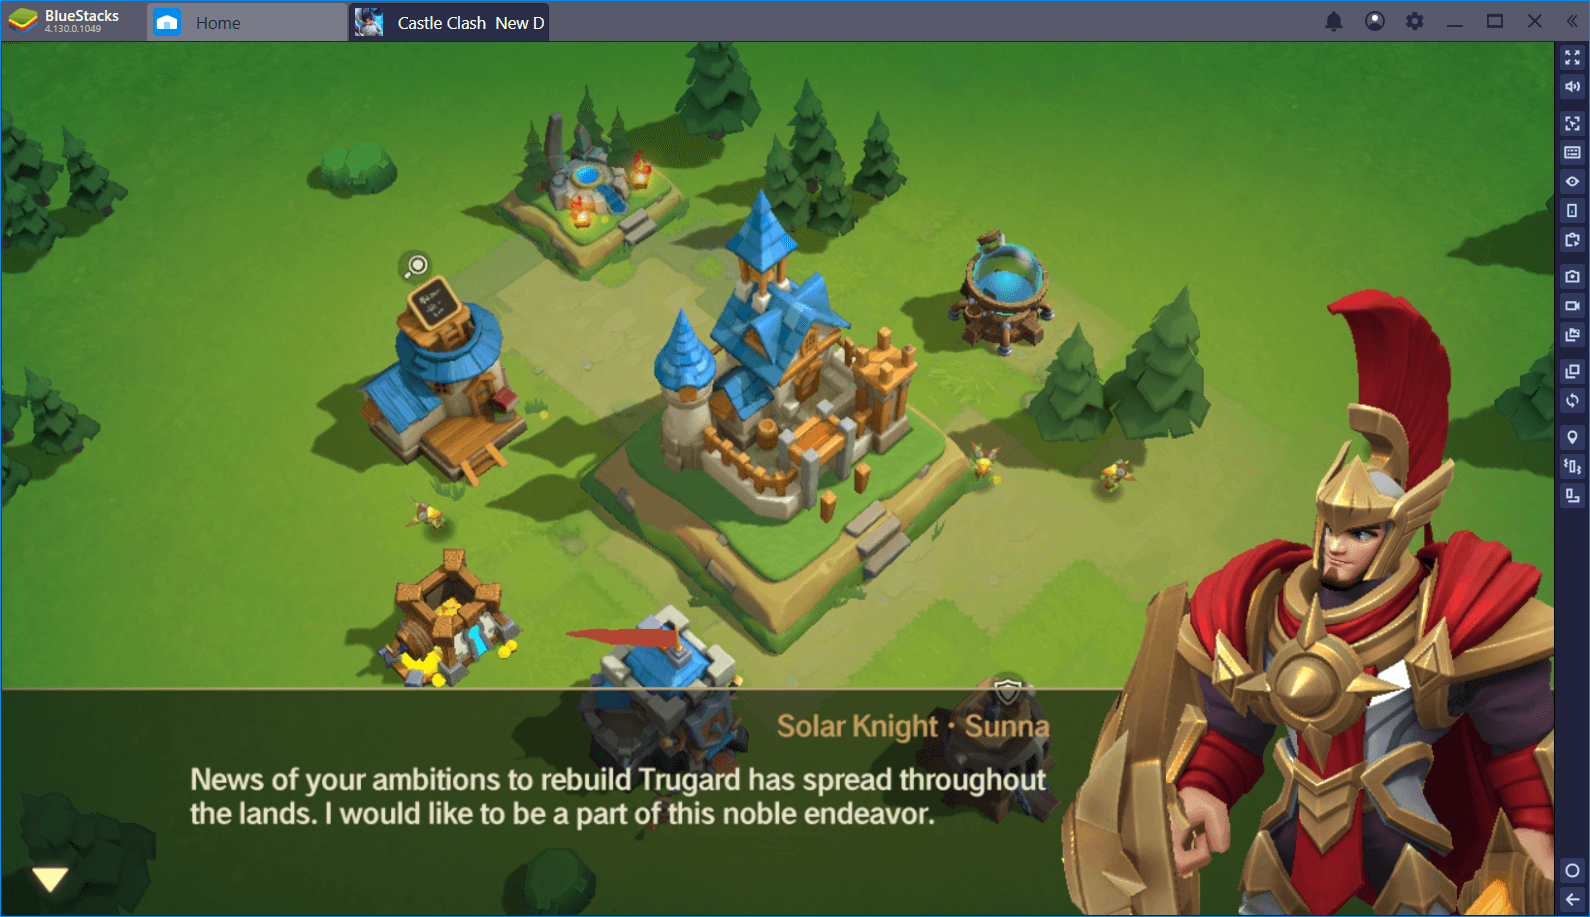 Castle Clash: New Dawn – Works Even Better on BlueStacks